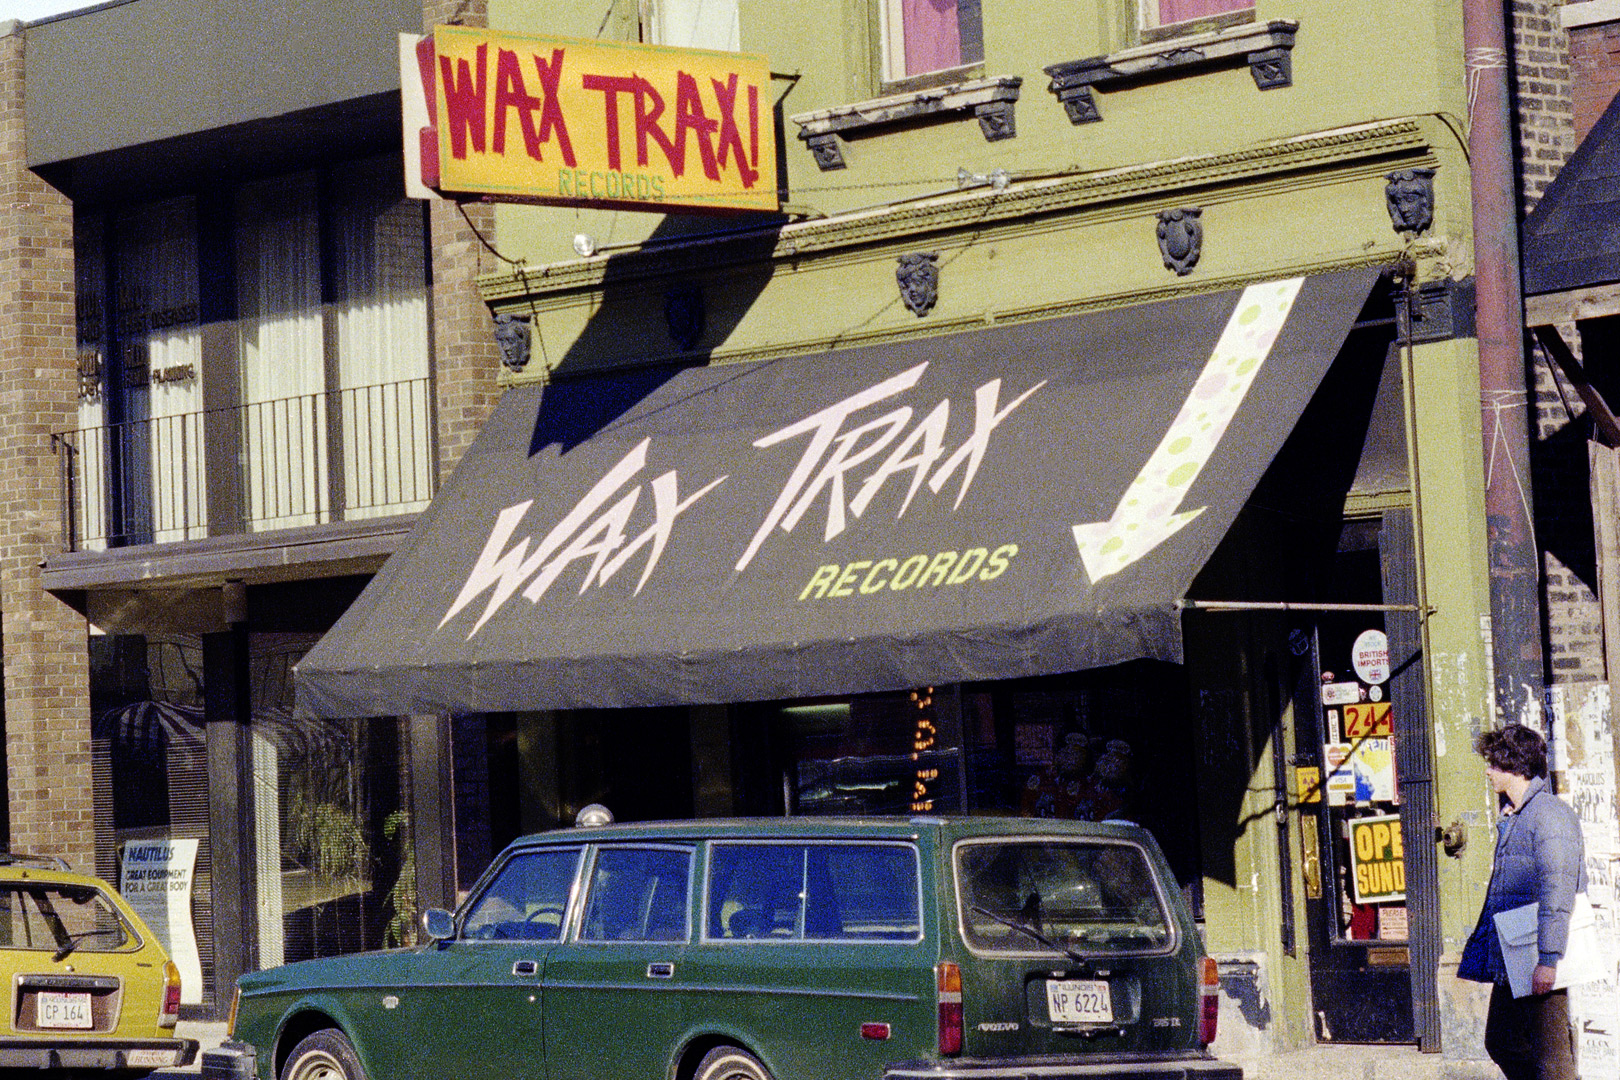 The Rise and Fall of Wax Trax